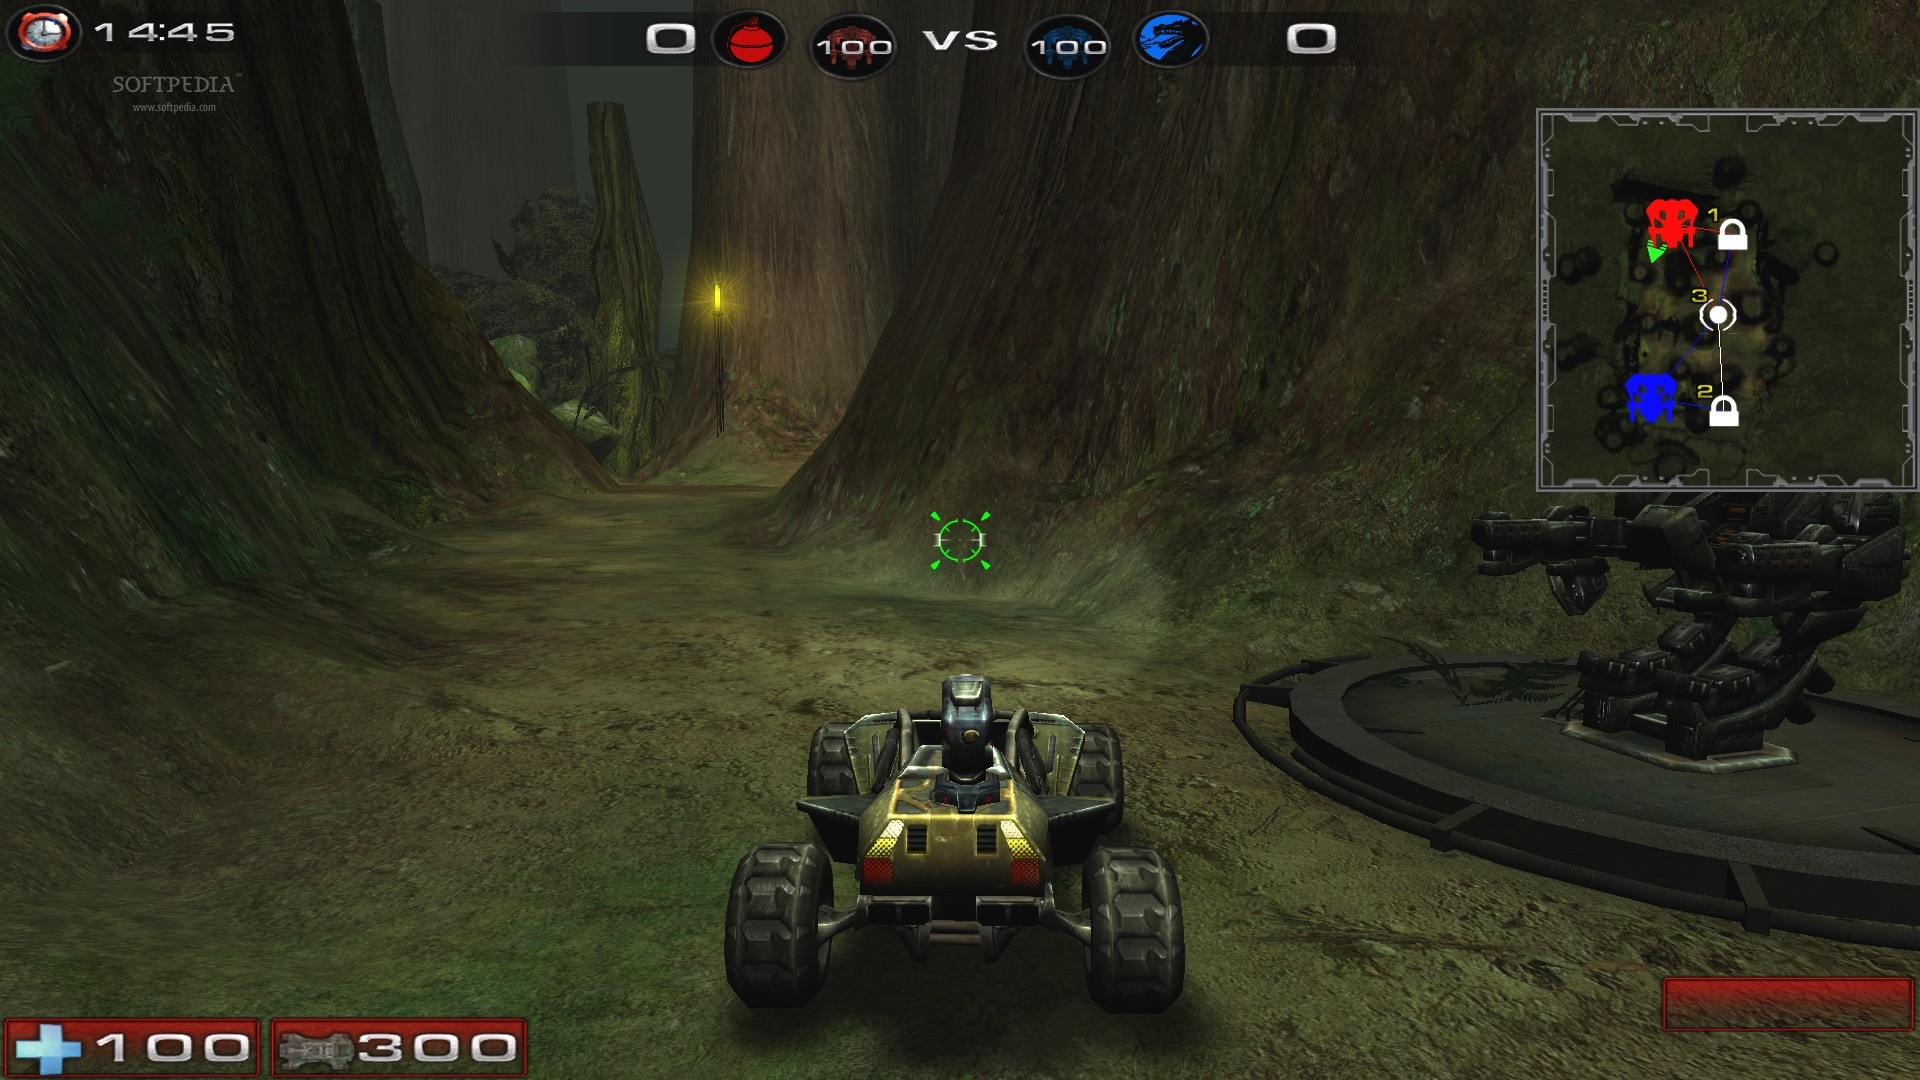 Online Multiplayer Shooting Games Online